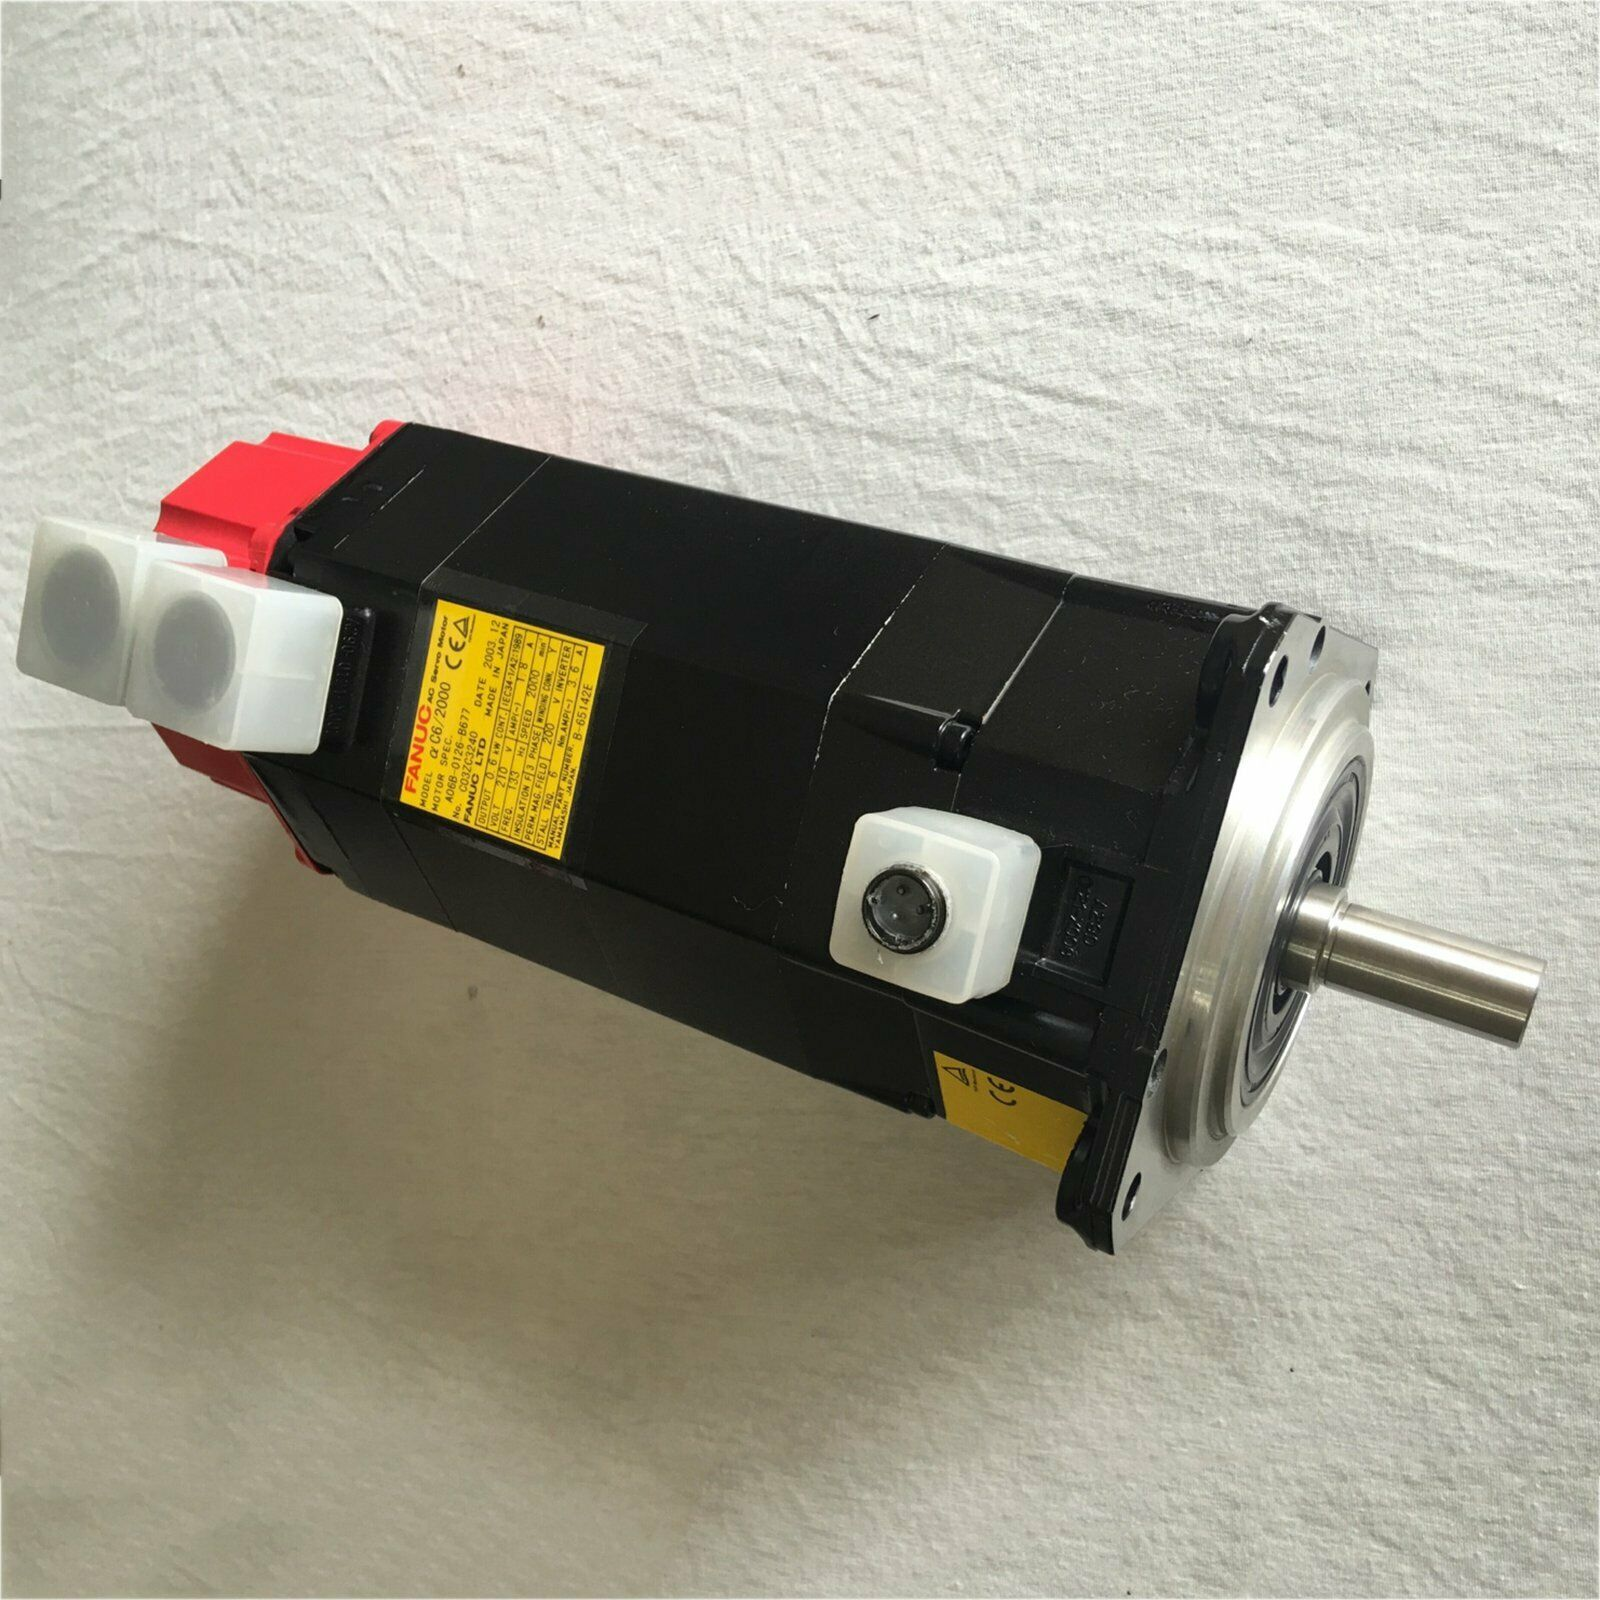 1PCS Used For Fanuc A06B-0126-B677 Servo Motor Tested in Good Condition#QW